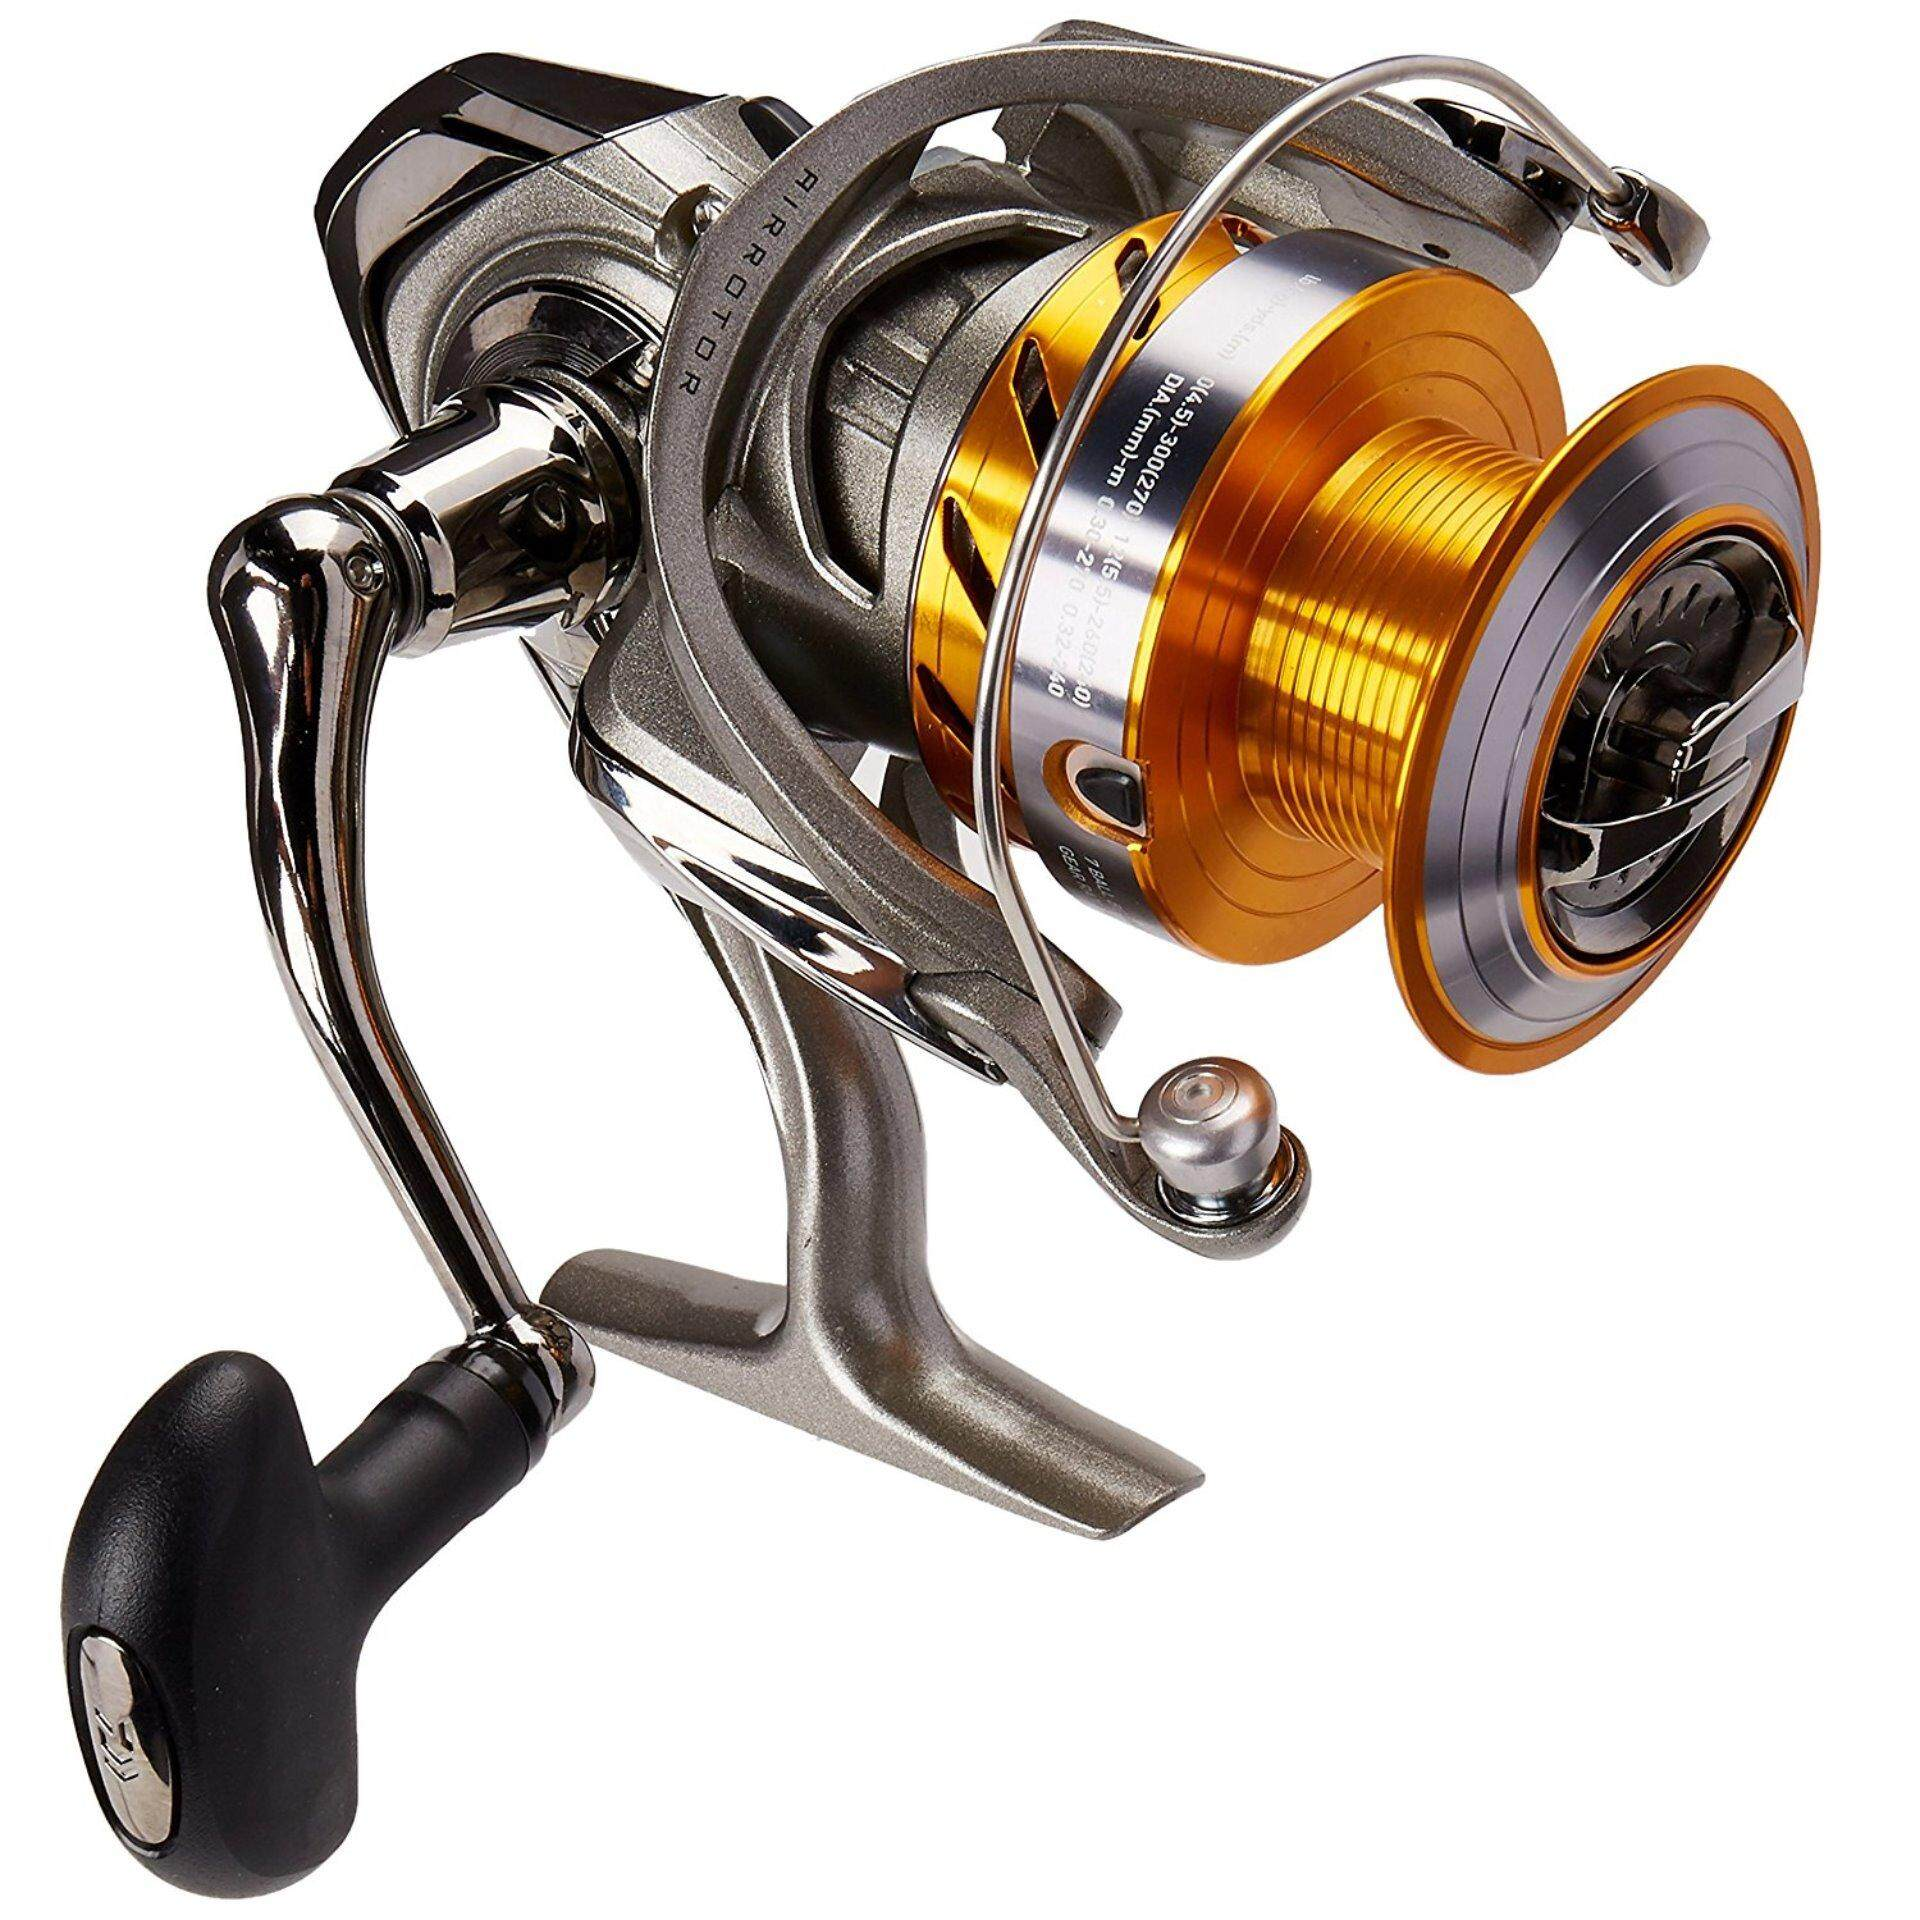 Daiwa Revros Heavy Action Spinning Reel REV4000H, Medium (Multicolor) - intl